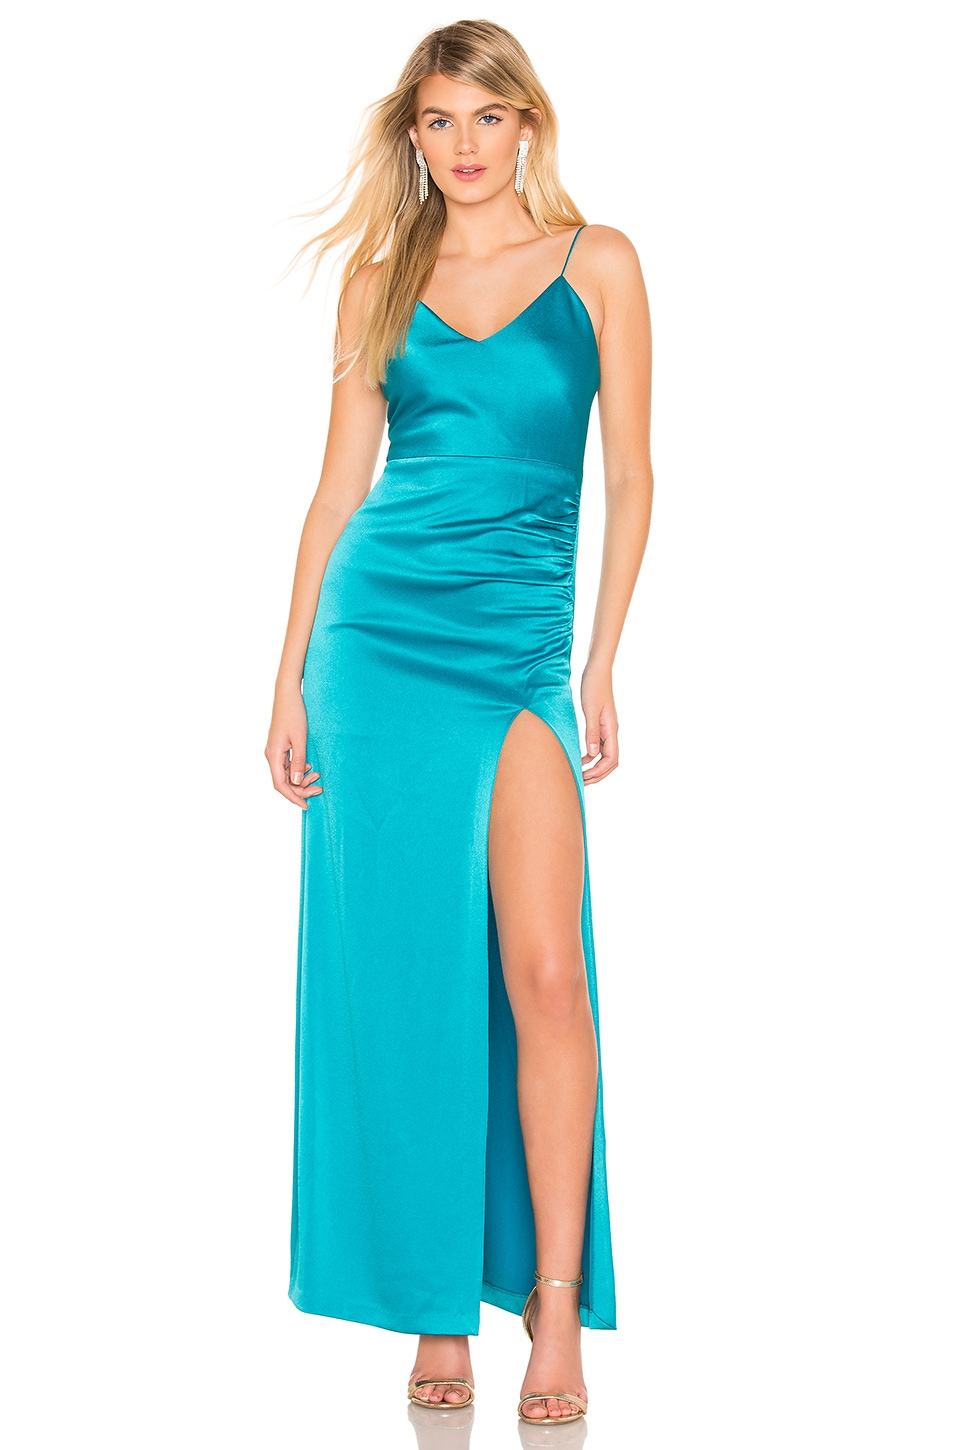 Alice + Olivia Fallon Ruched Gown in Teal